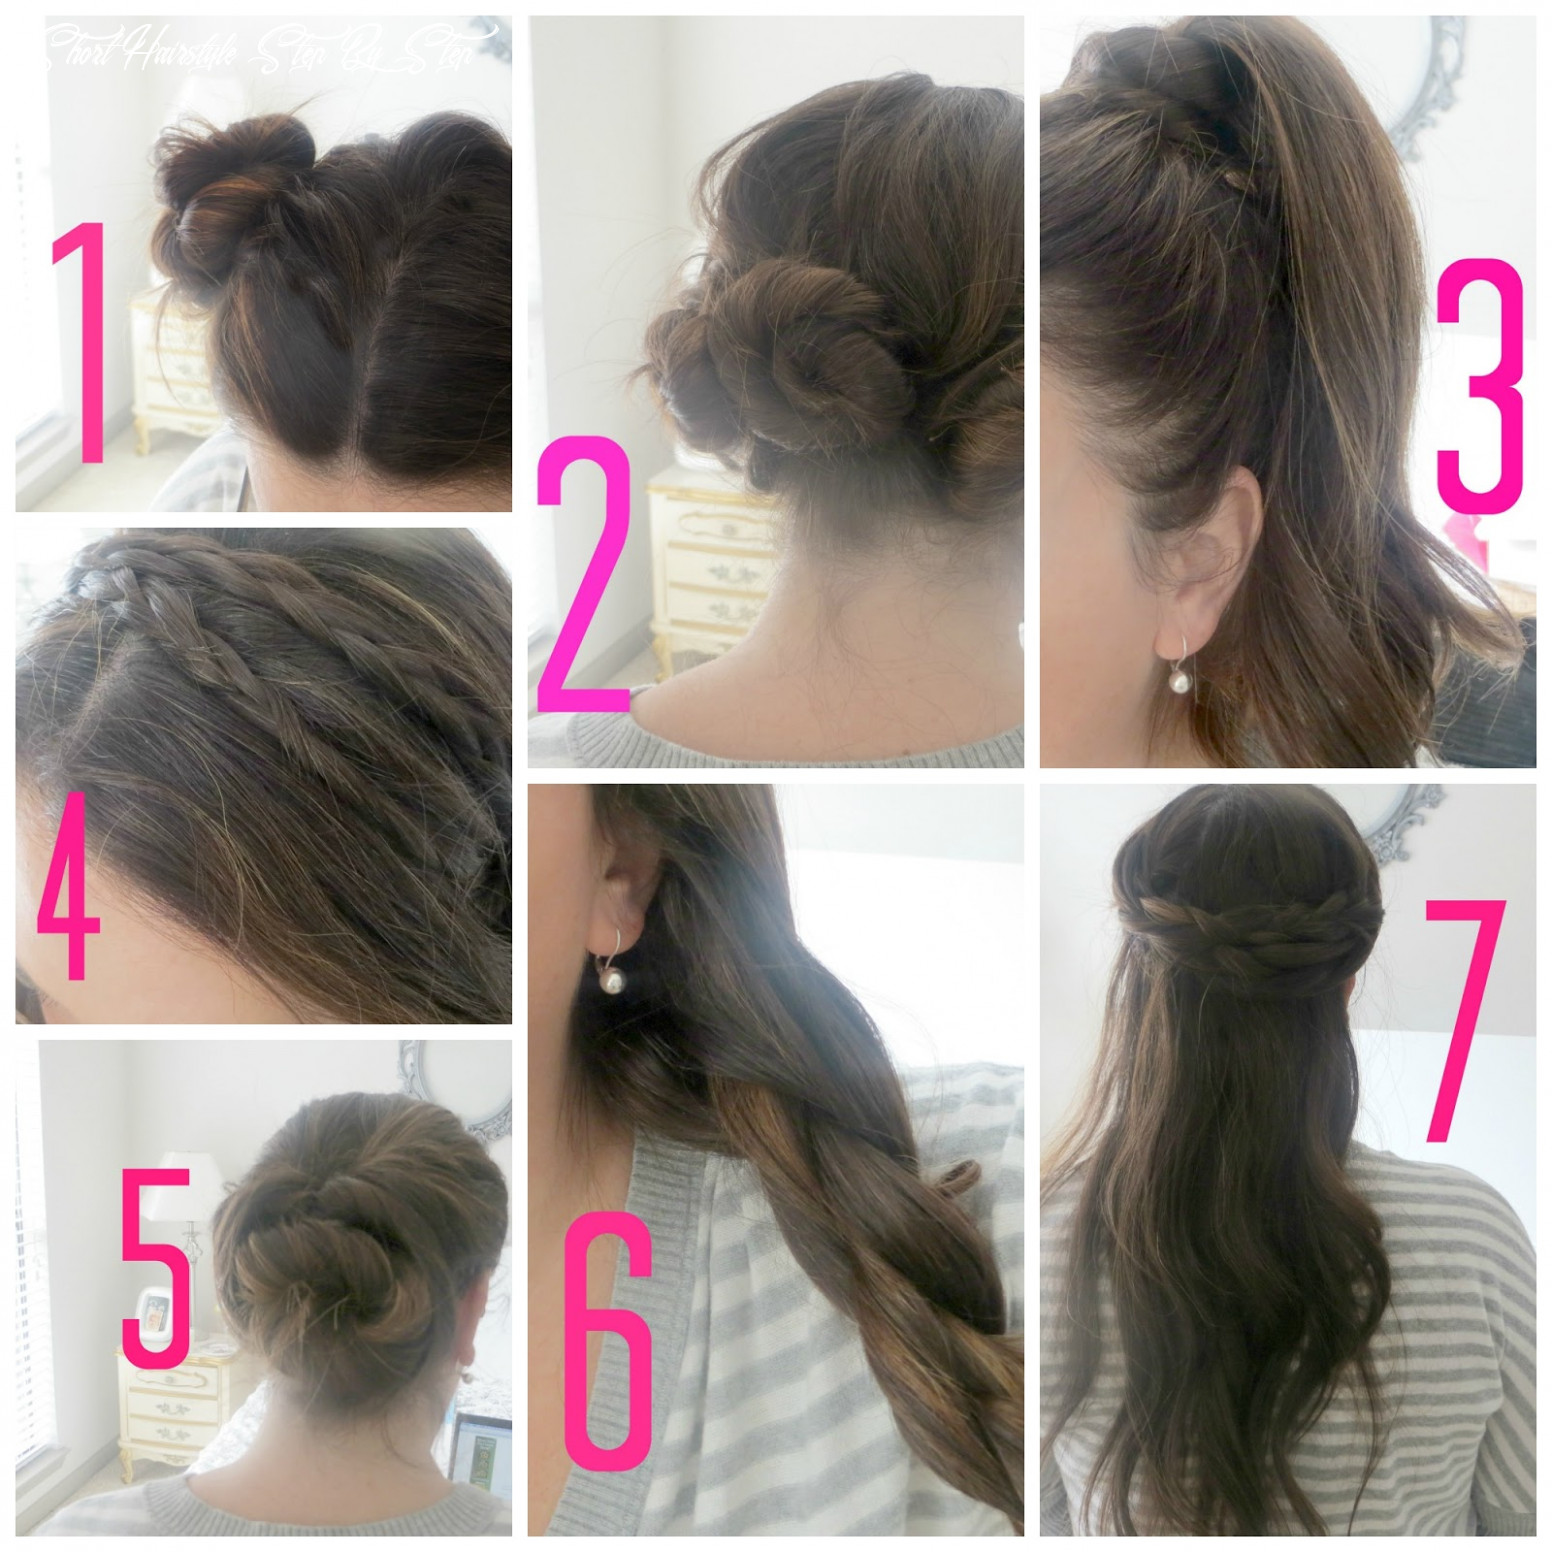 Easy hairstyles for short hair step by step   haircuts short hairstyle step by step